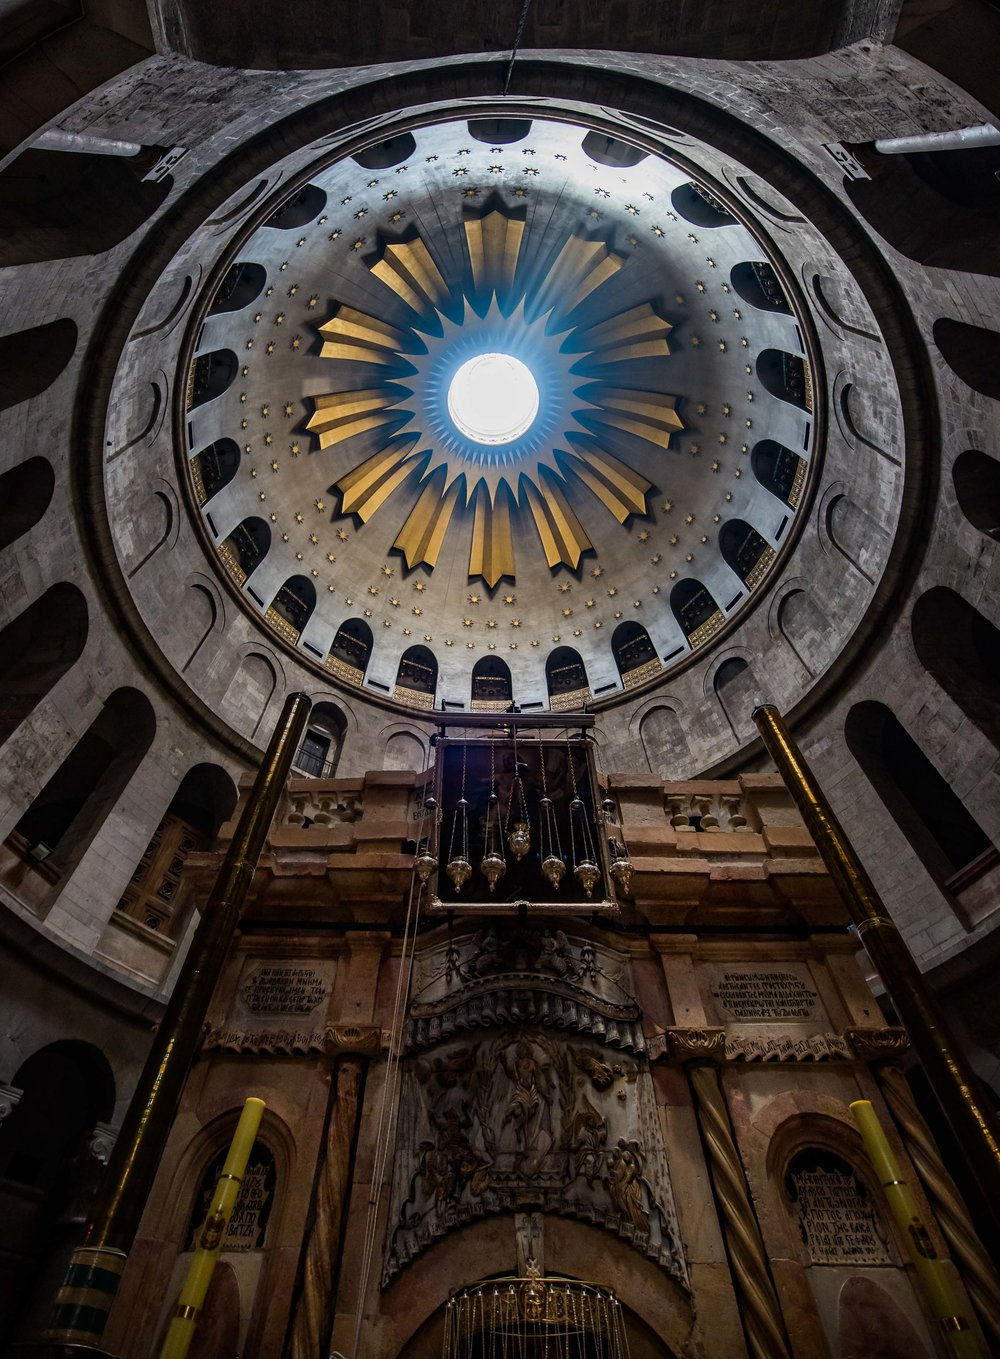 Church of the Holy Sepulchre, Jerusalem, Israel 2017